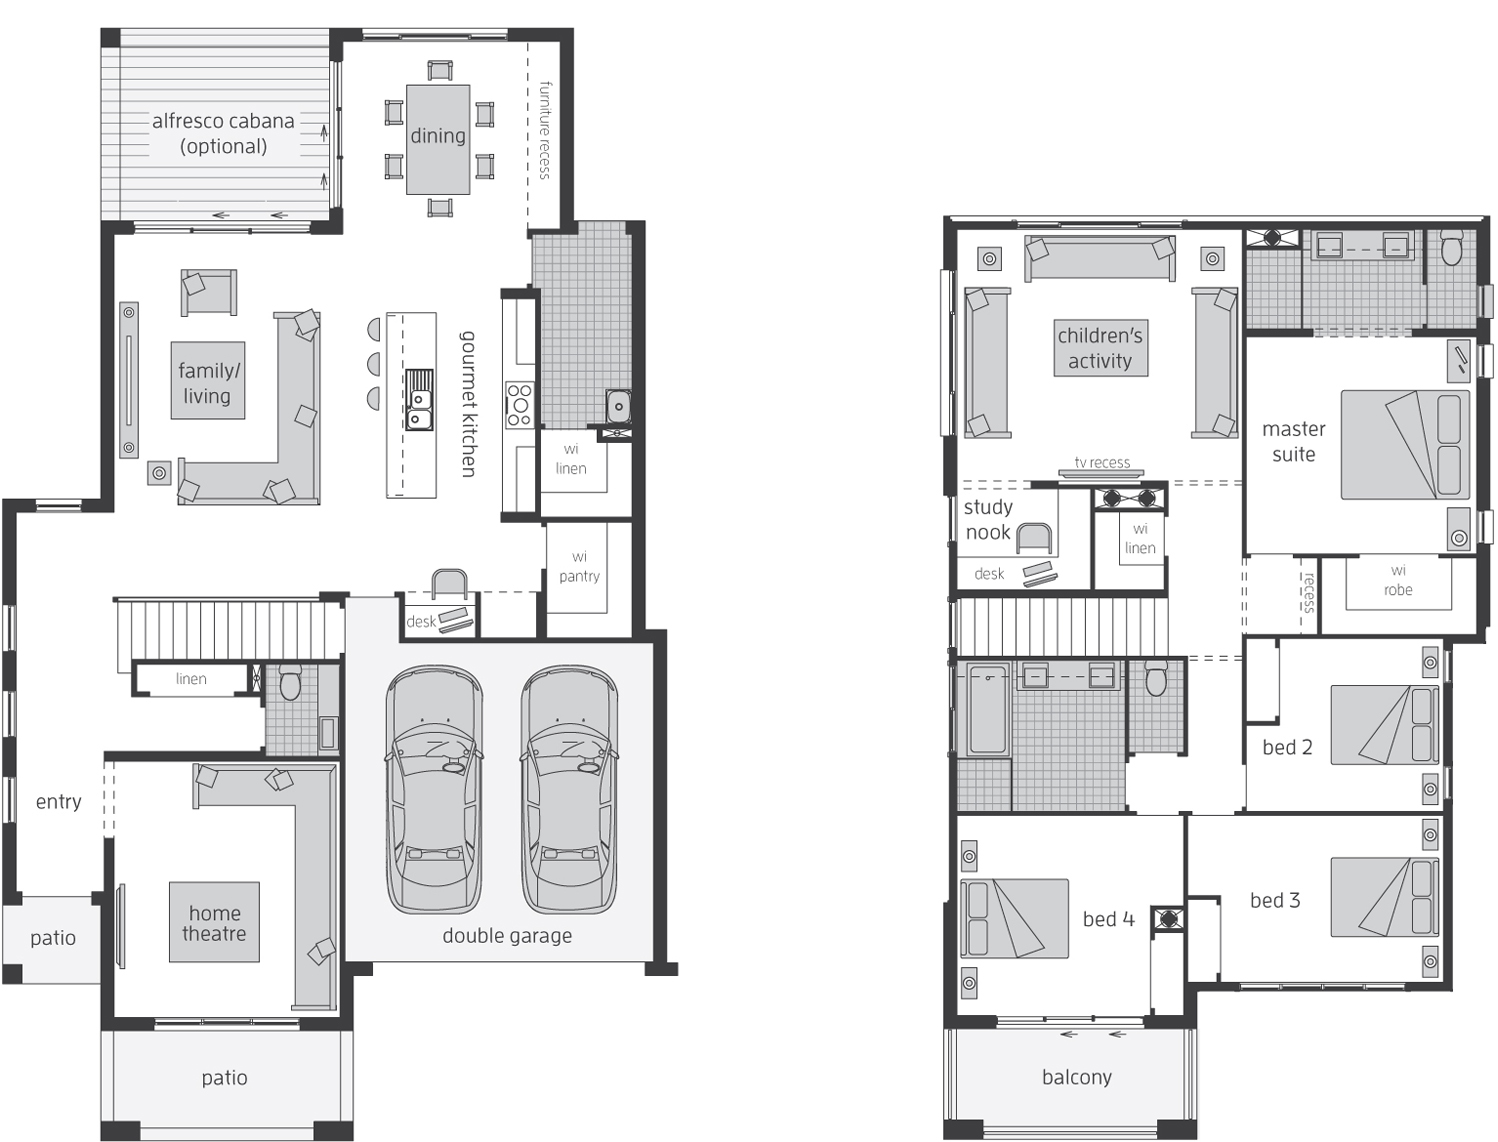 Floor Plan - Castleton 34 - Two Storey Home Design -McDonald Jones